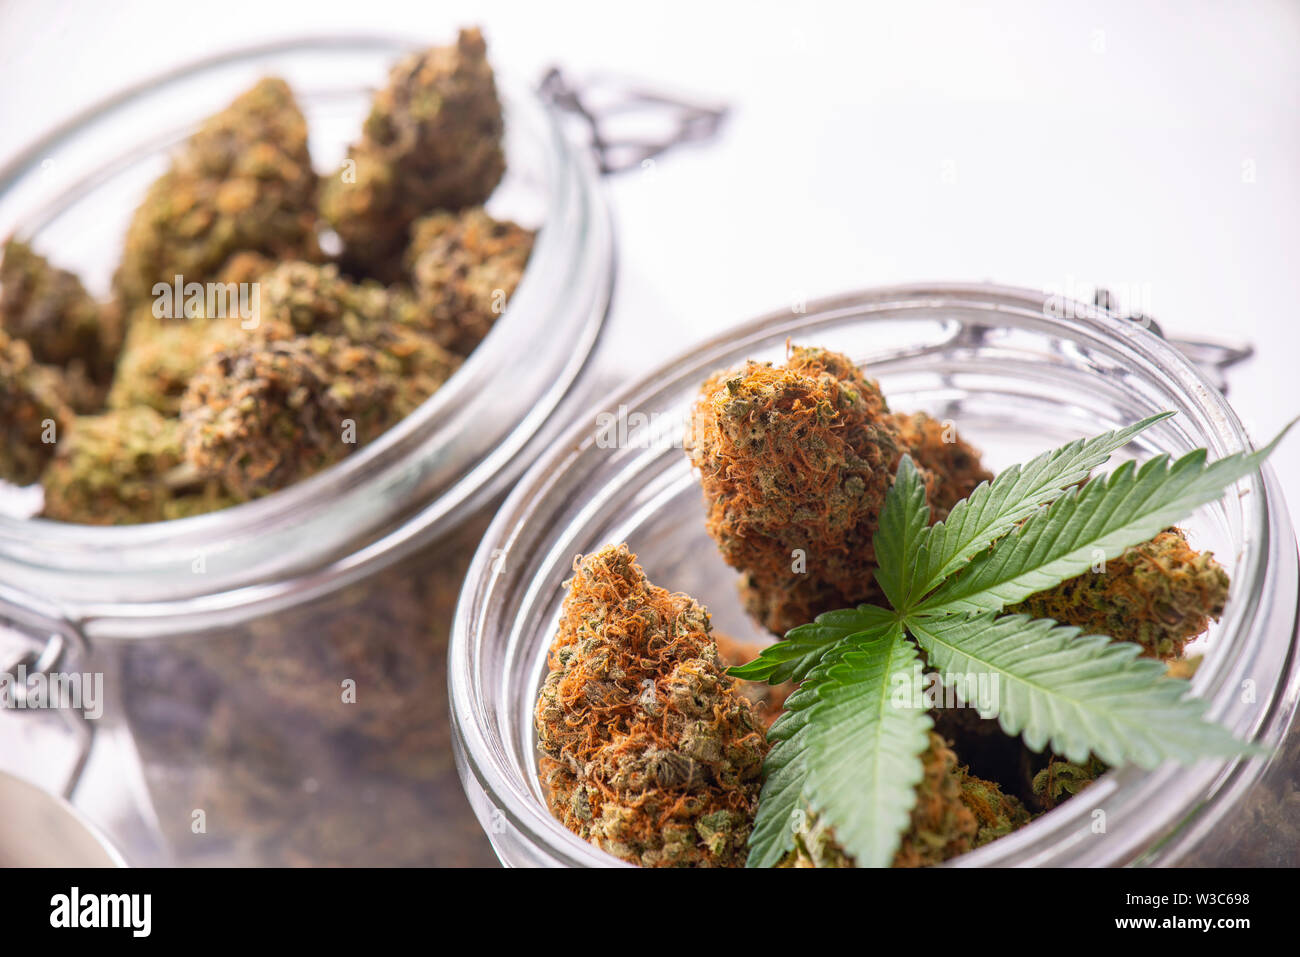 Detail of cannabis buds on clear glass jars isolated on white - medical marijuana dispensary concept Stock Photo